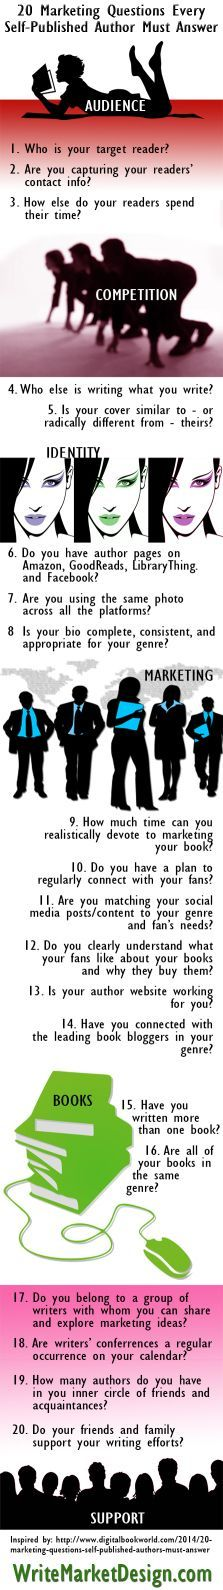 Marcie Brock, Book Marketing Maven | Practical book marketing advice for self-publishing authors, created by http://WriteMarketDesign.com